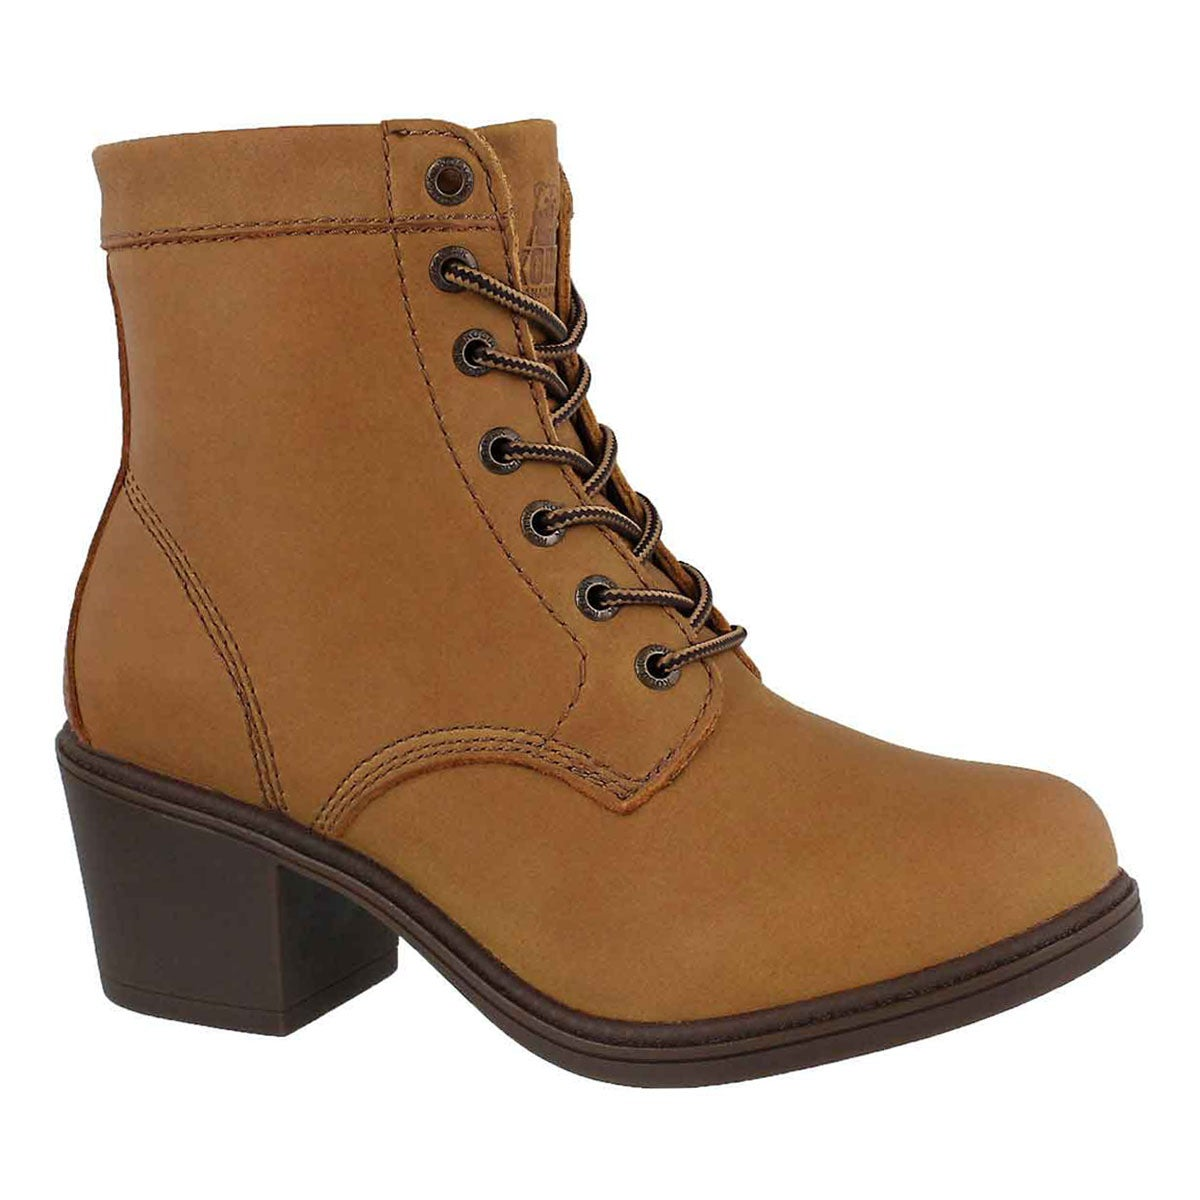 Women's CLAIRE caramel wp lace up ankle booties